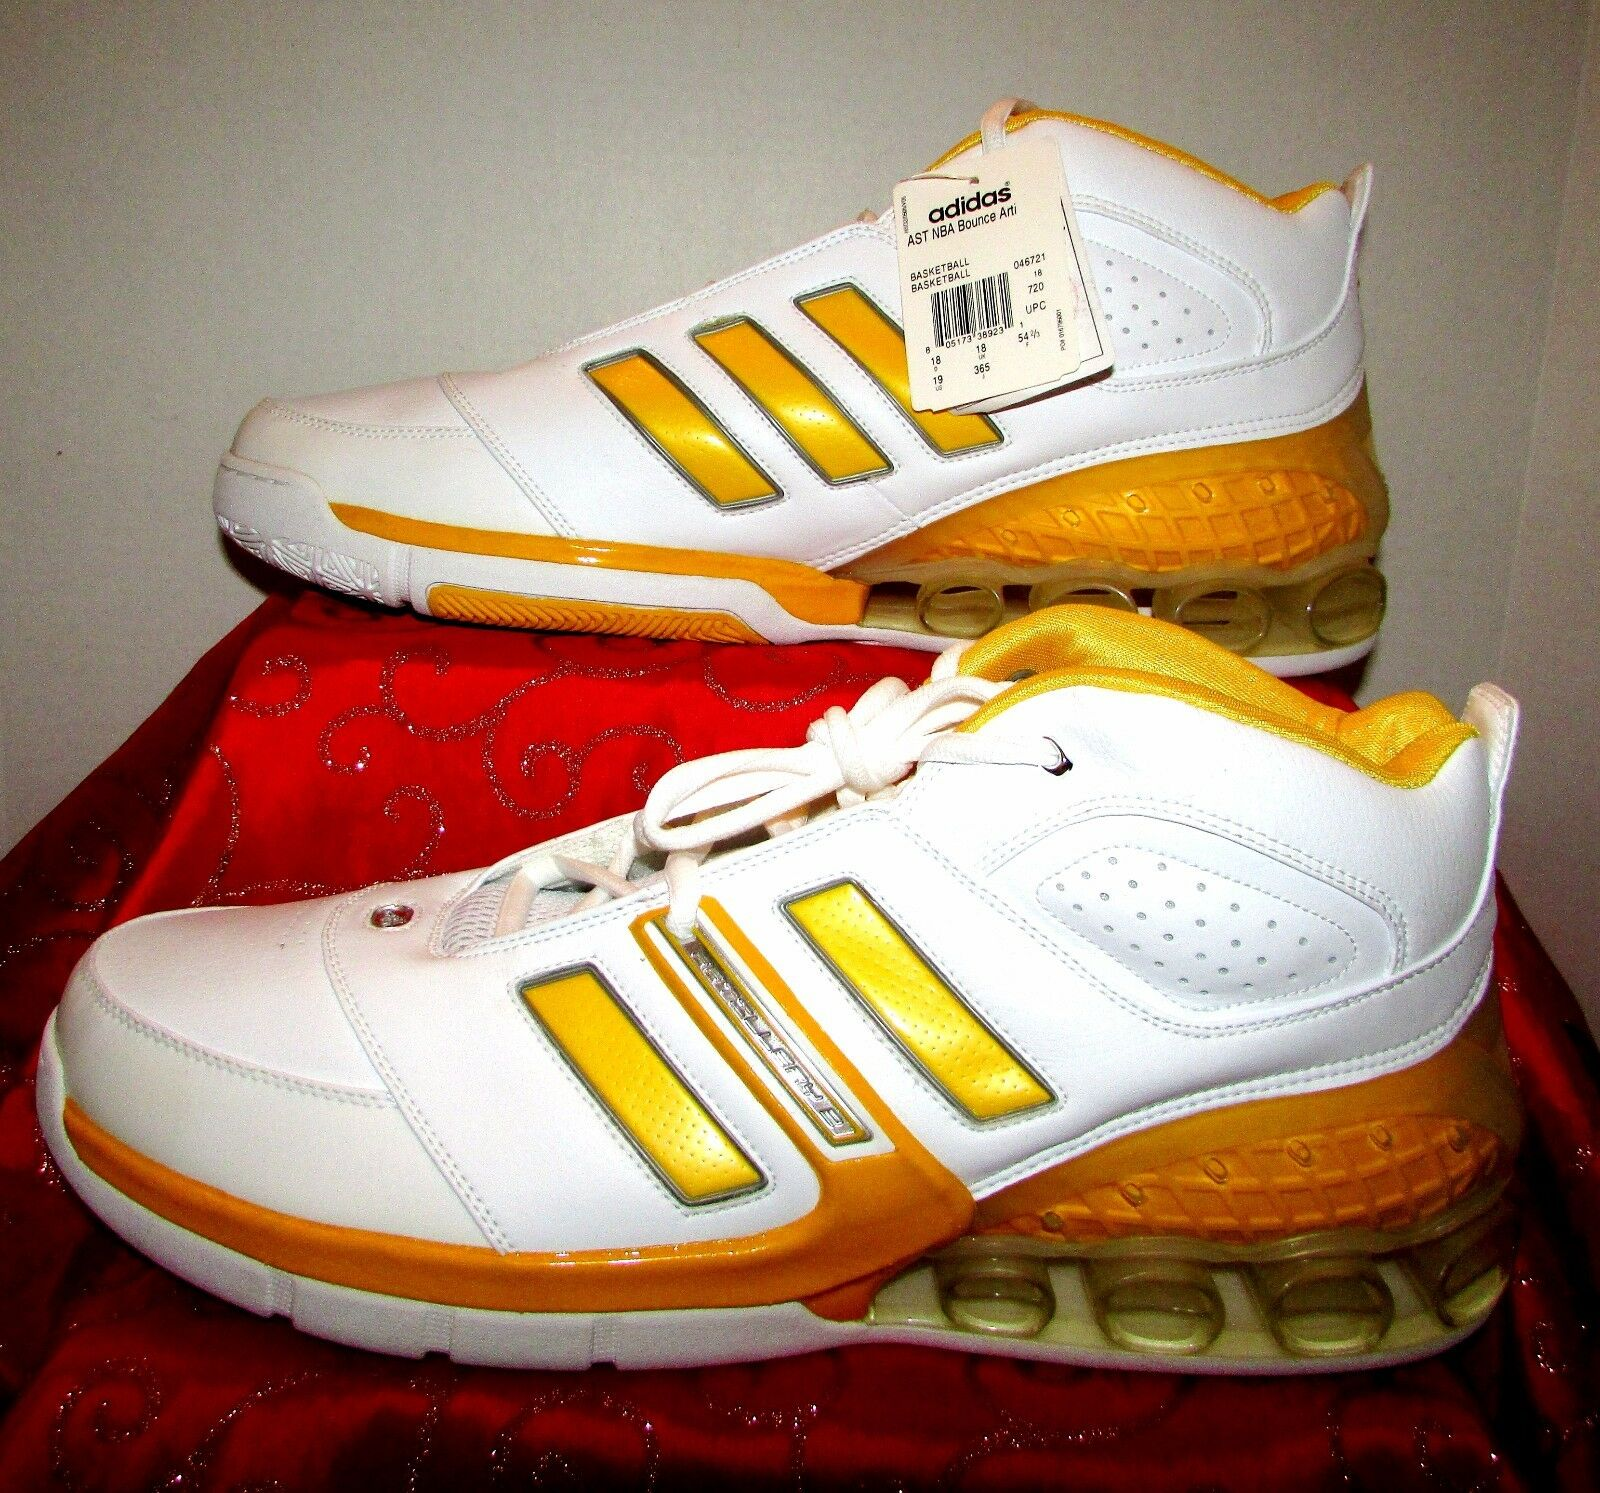 NEW ADIDAS AST ARTILLERY 2 ARTI NBA BOUNCE YELLOW/WHITE BASKETBALL SHOES SIZE 19